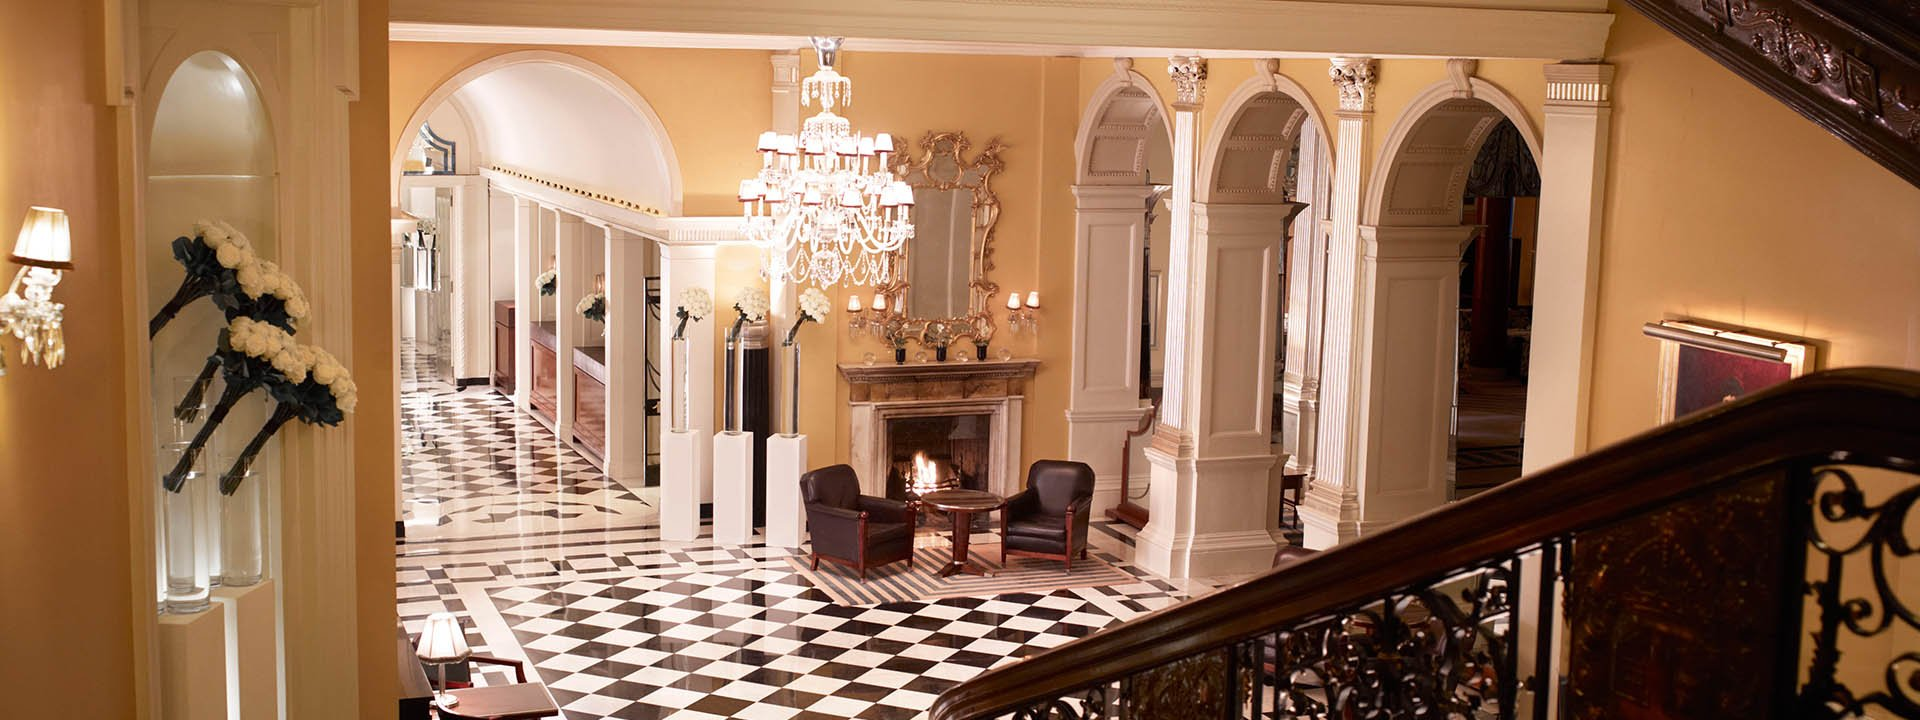 Claridge's reception hall